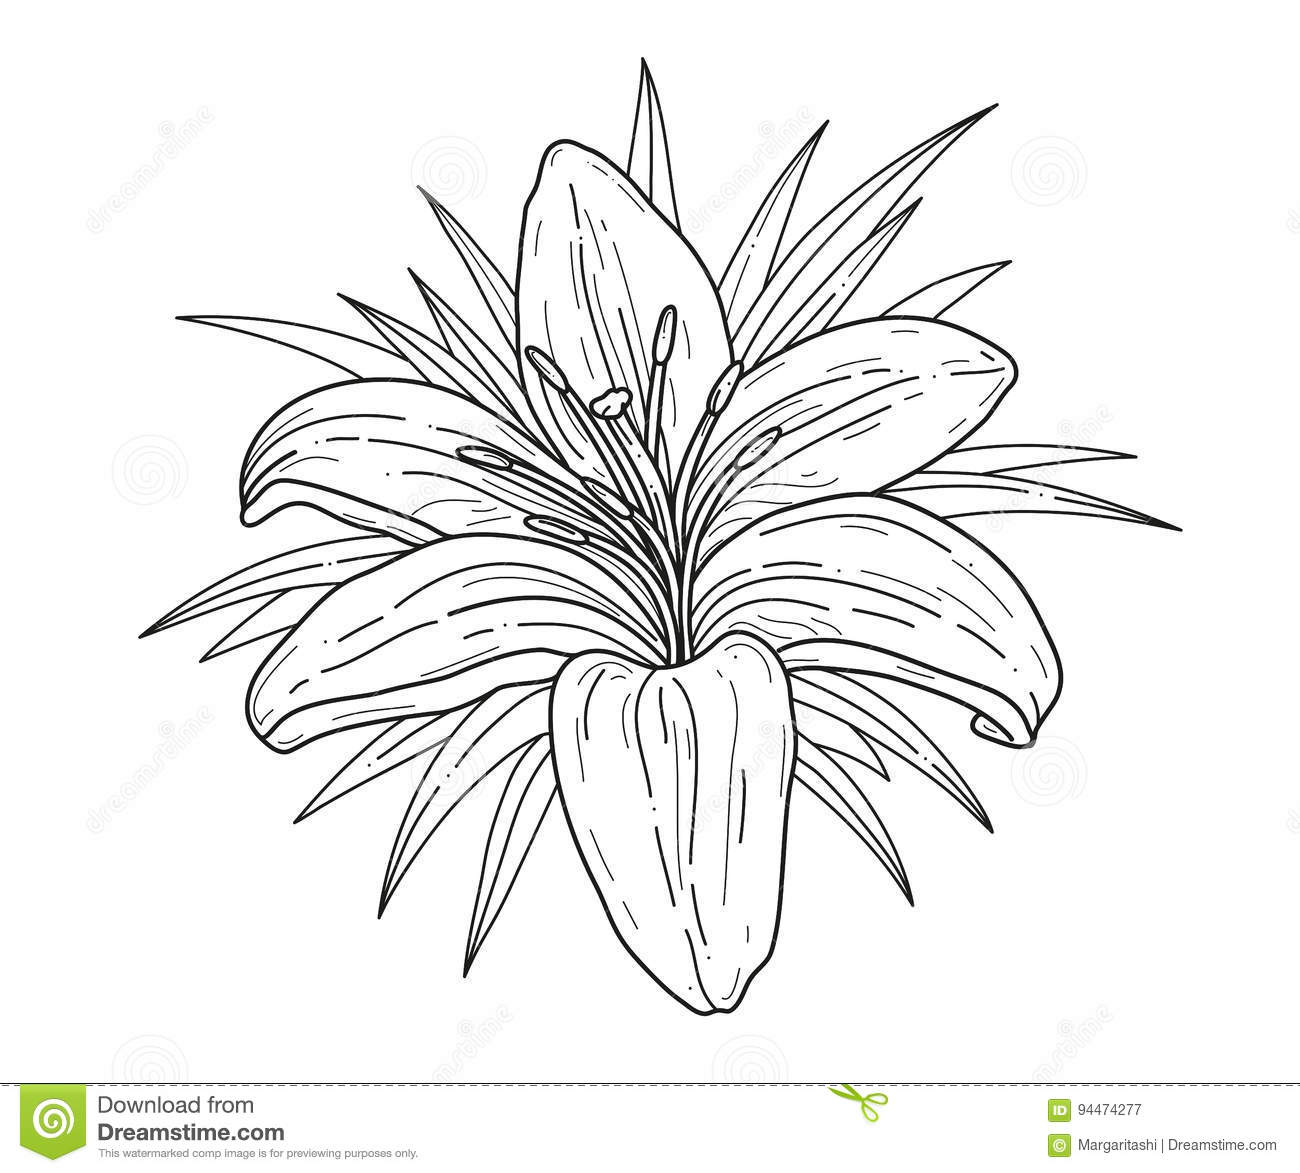 Lily flower monochrome vector illustration beautiful tiger lilly background beautiful cards design element flower greeting illustration invitations isolated lilly dhlflorist Images